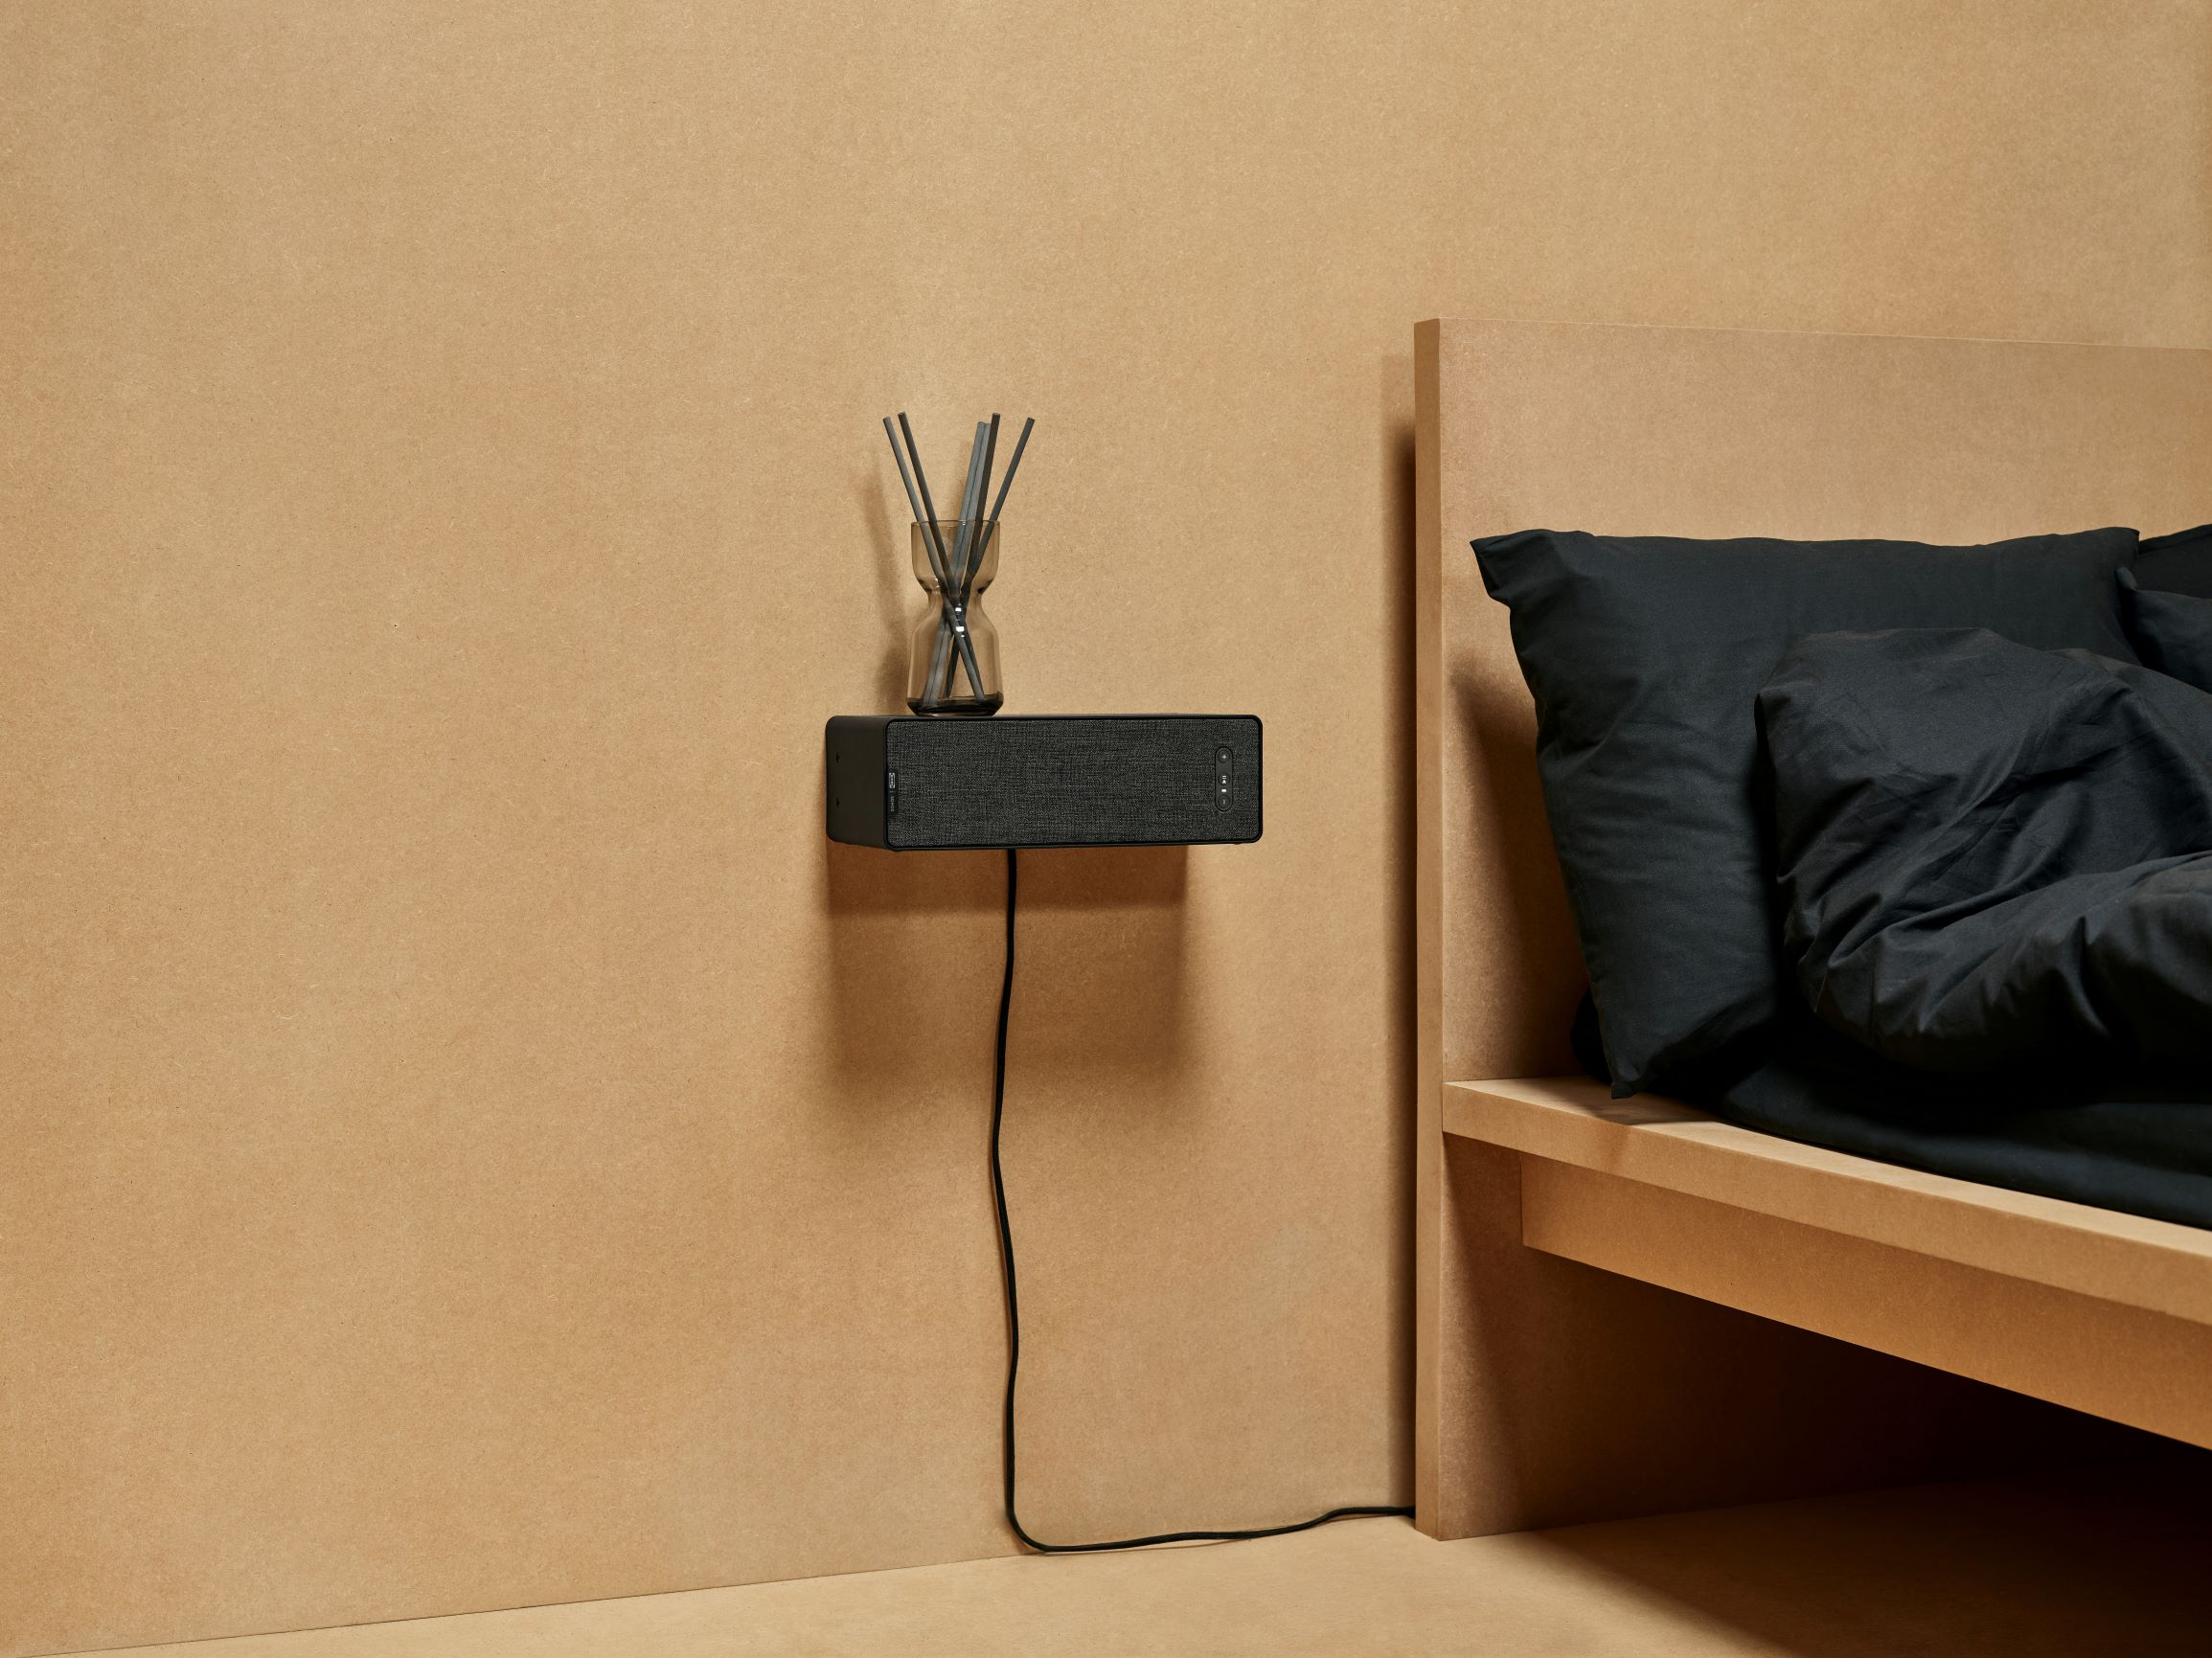 Ikea And Sonos Introduce Pair Of Symfonisk Wi Fi Speakers